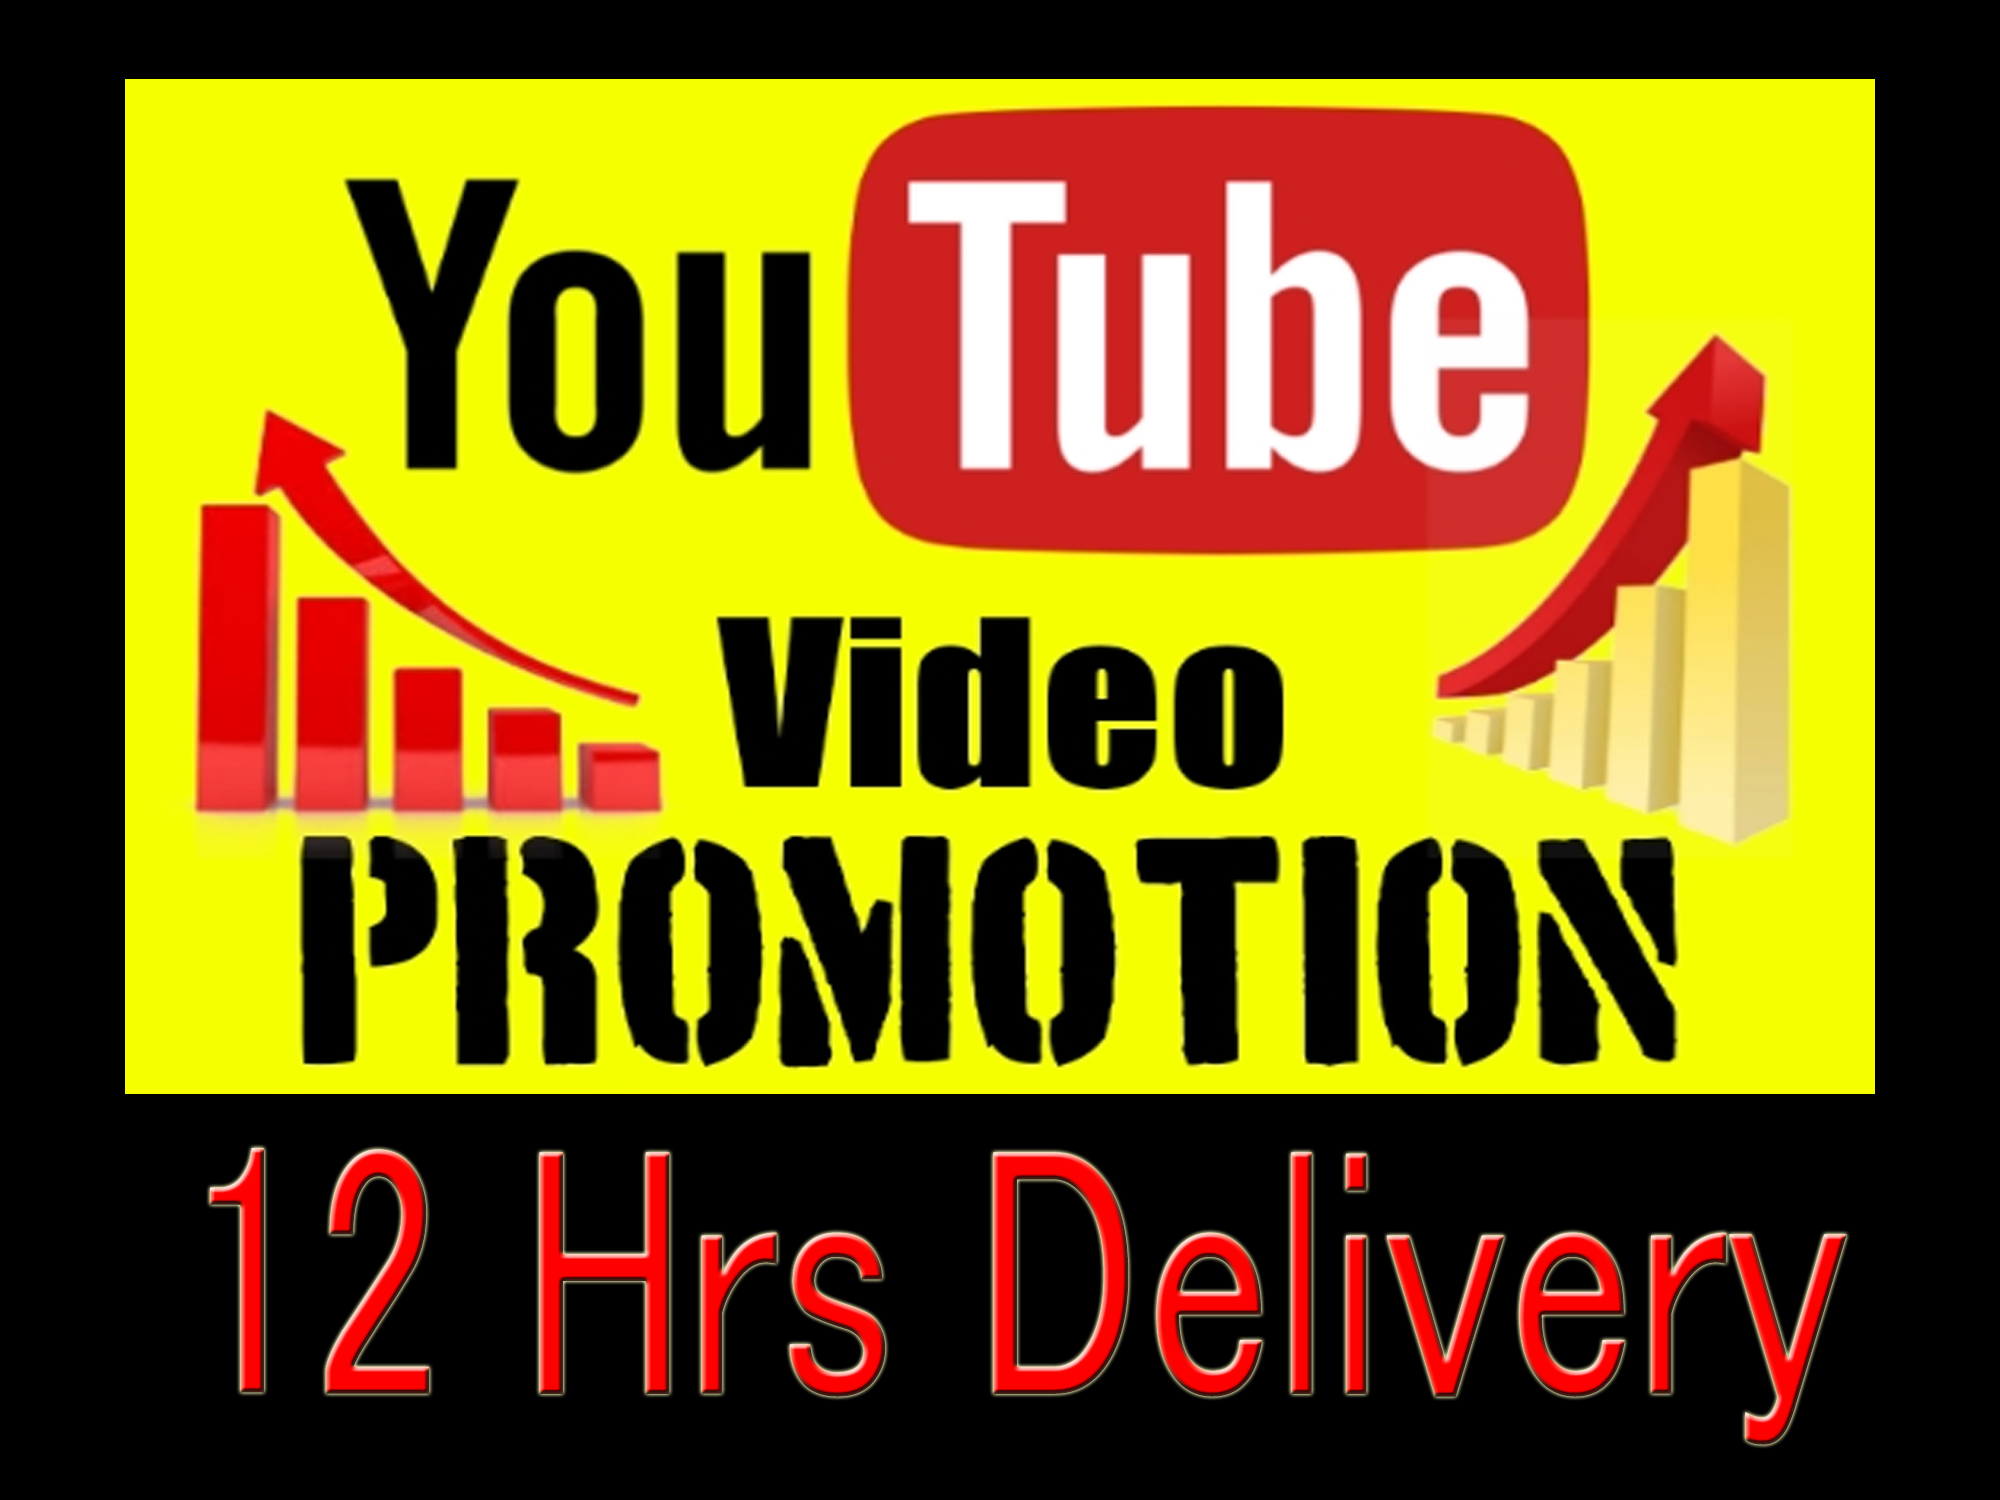 Organic Lifetime guaranteed Youtube video promotion and social media music marketing 5hrs delivery